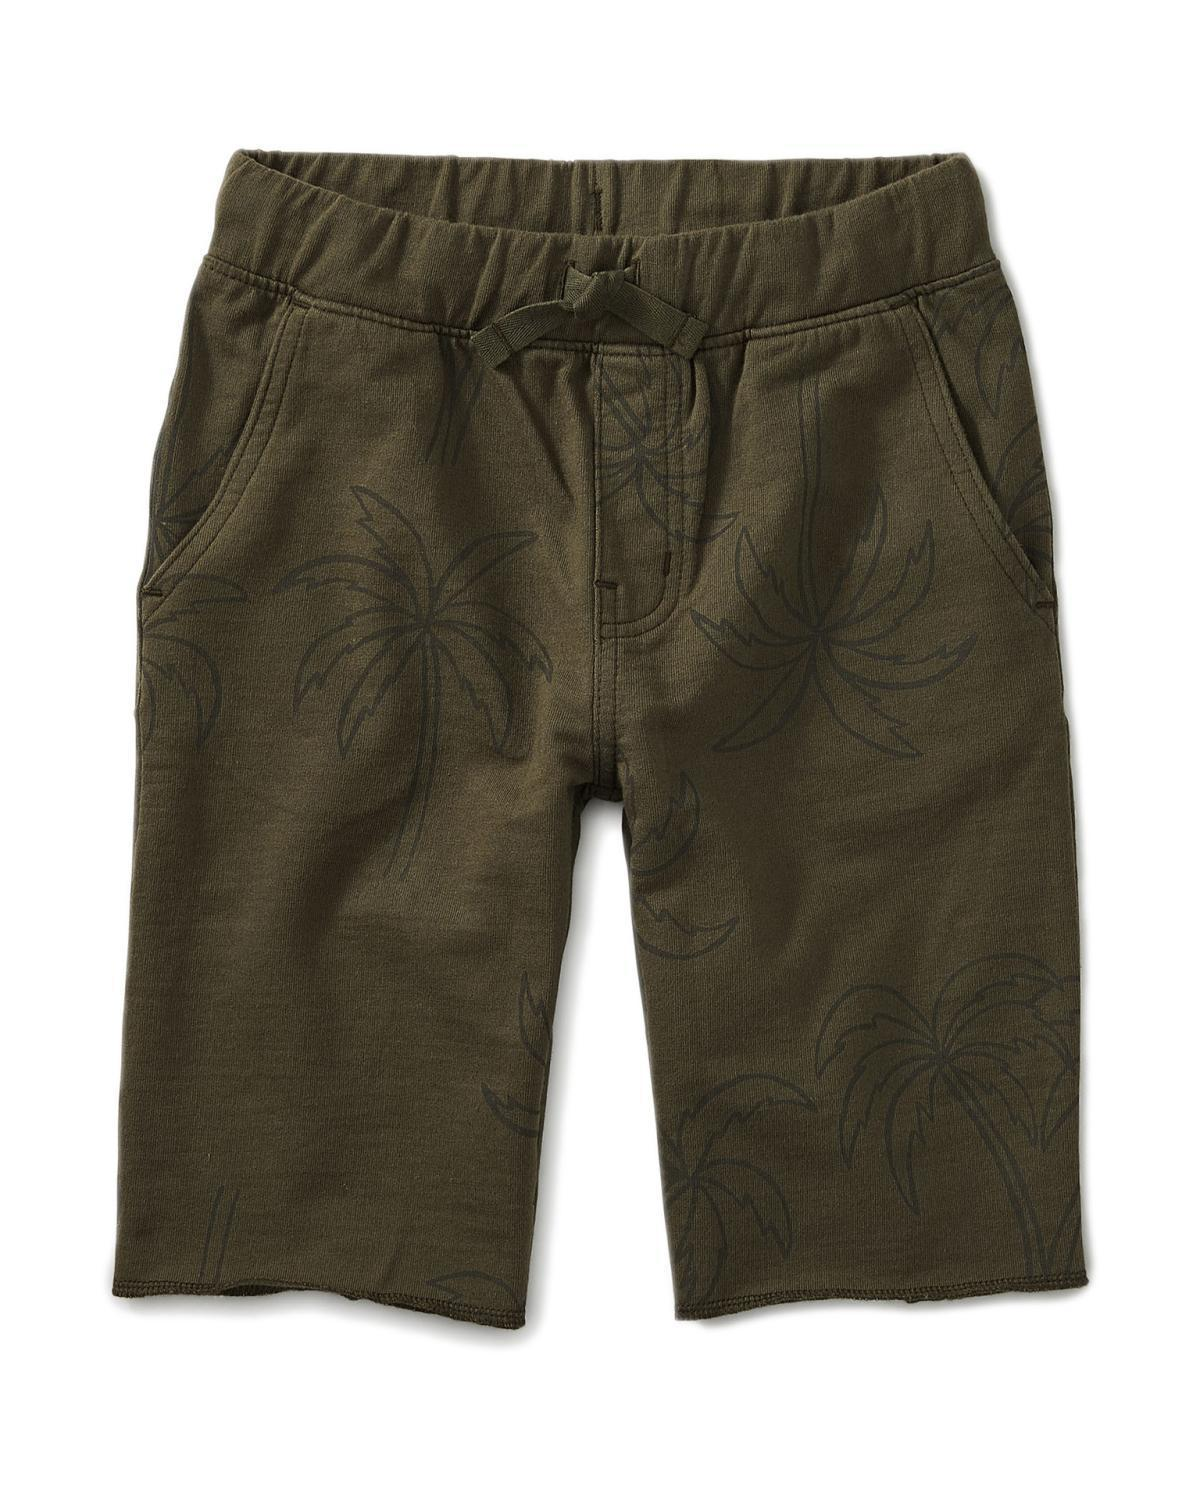 Little tea collection boy 10 pattern cruiser shorts